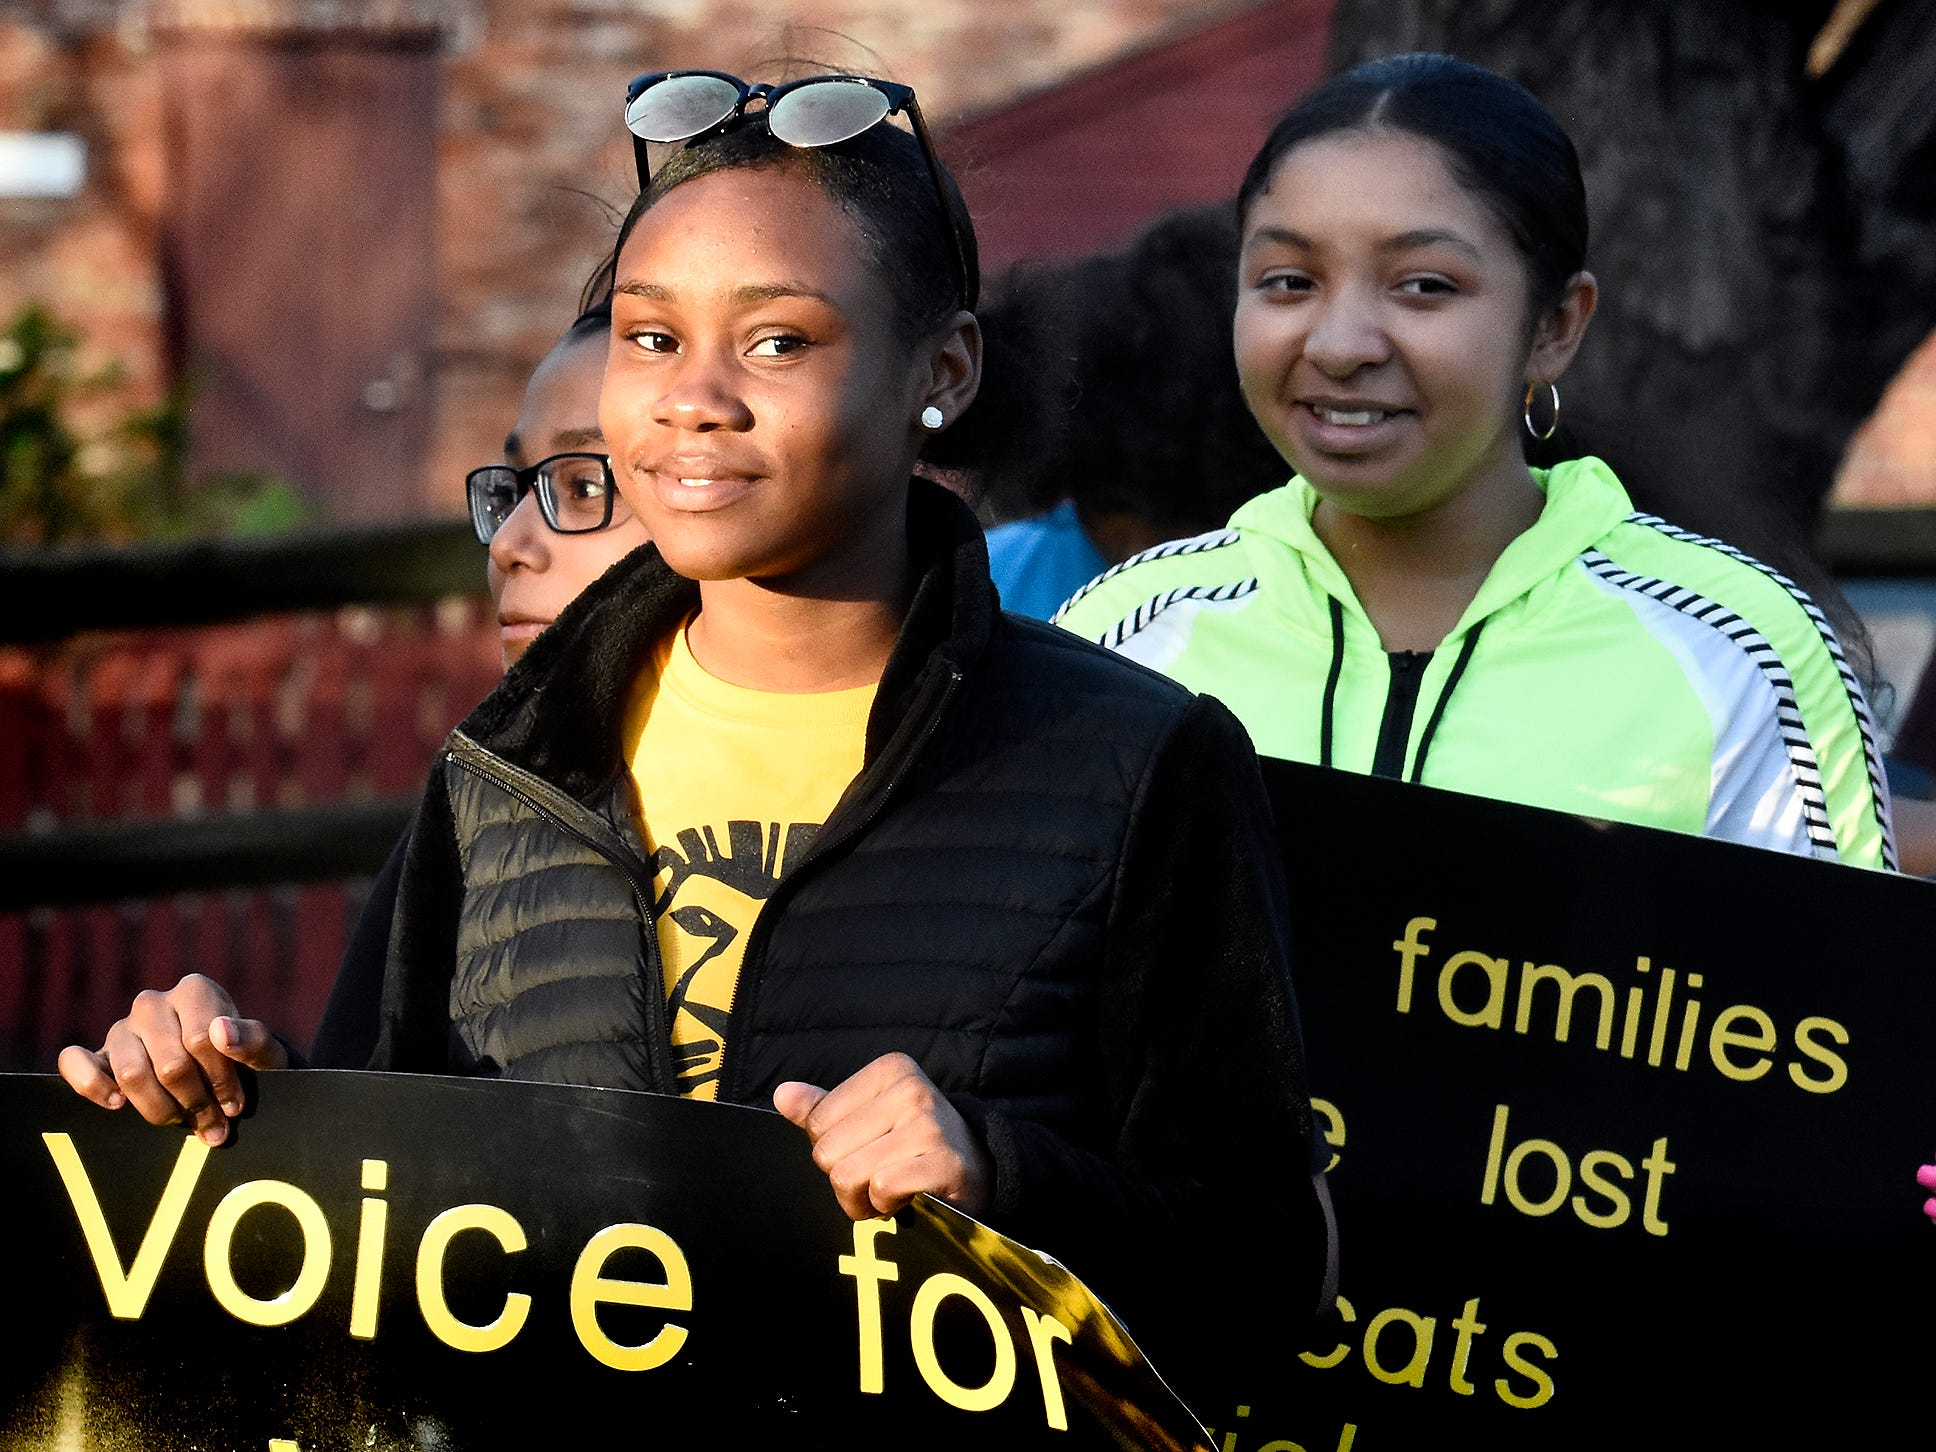 Edgar Fahs Smith STEAM Academy seventh grader India Tetteh, left, and her classmates gather during a presentation at the Colonial Courthouse during the 33rd annual Crime Victims' Rights March and Candlelight Vigil Tuesday, April 9, 2019. Participants marched from the courthouse to Trinity United Church of Christ for a ceremony and candlelight vigil. The York County Victims' Rights Coalition sponsored the event to coincide with National Crime Victims' Rights Week. Bill Kalina photo